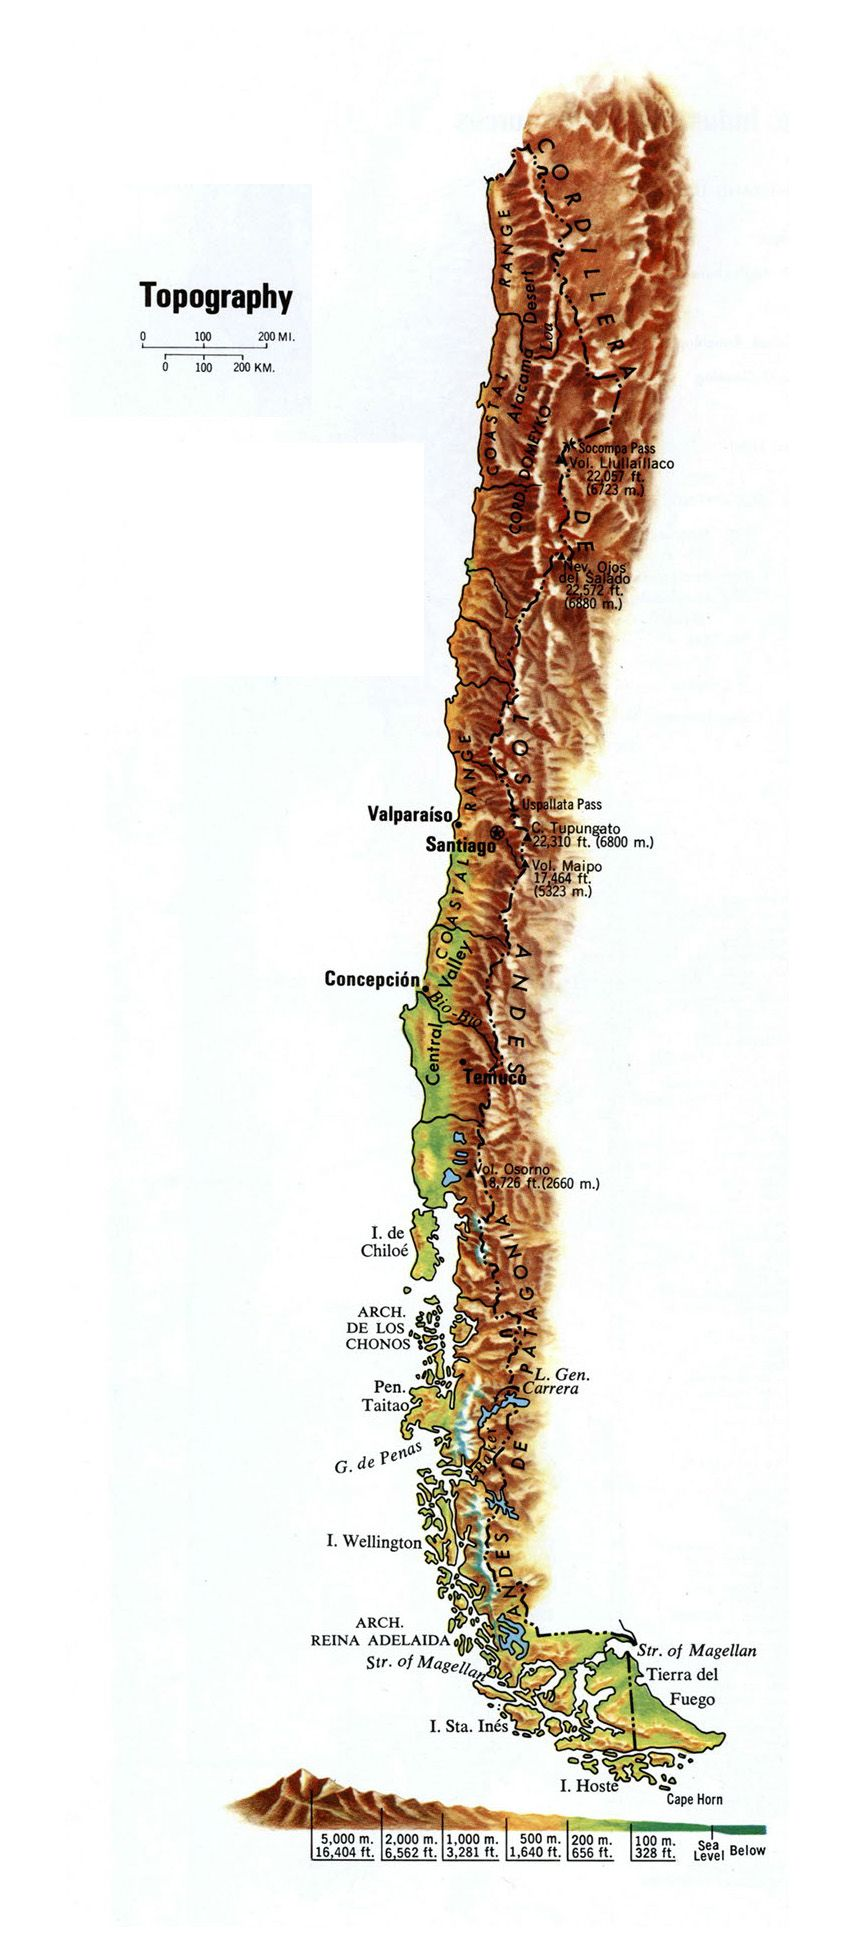 Large Topography Map Of Chile Chile Large Topography Map Topography Map Topography Geography Map